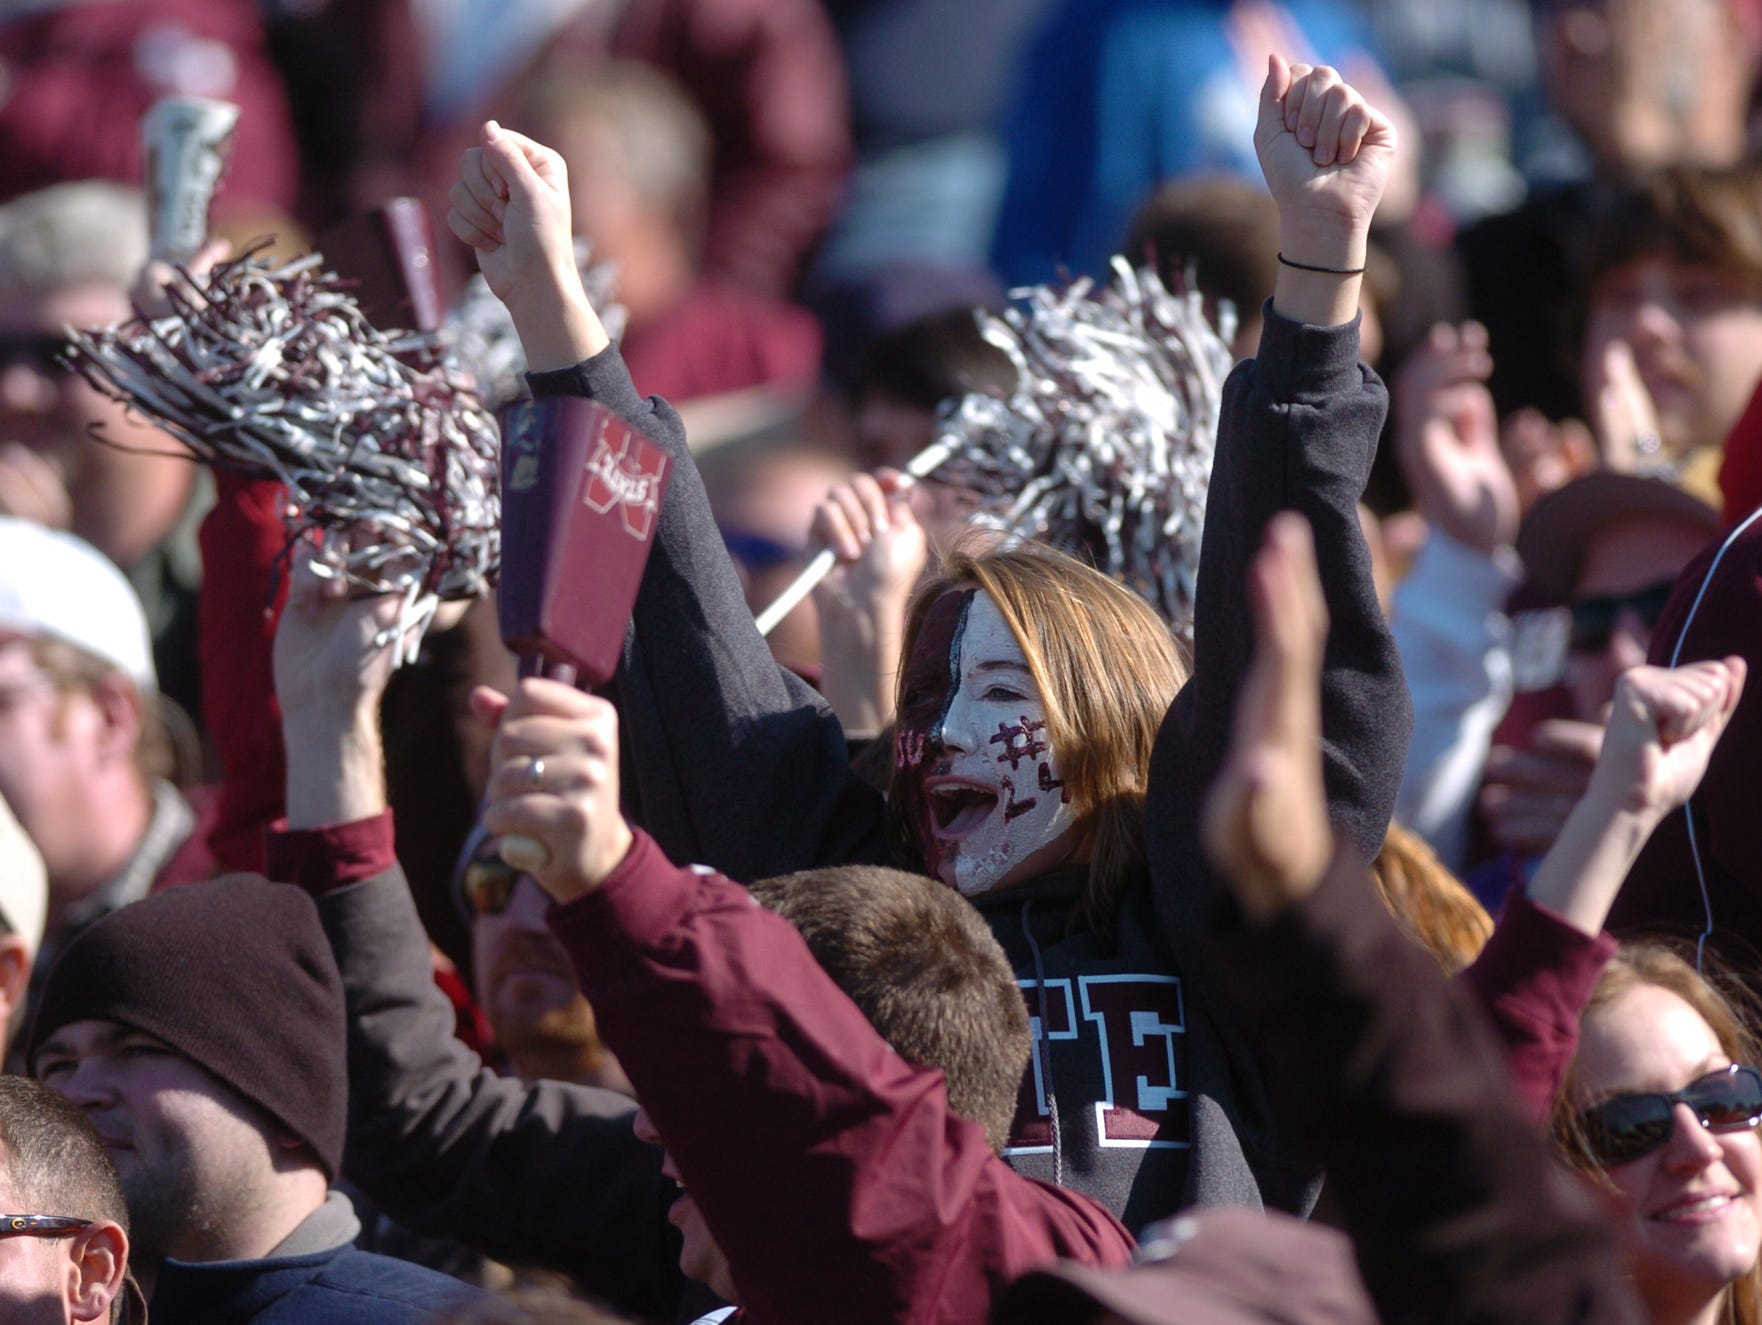 MSU fans cheer as State recovers the ball.